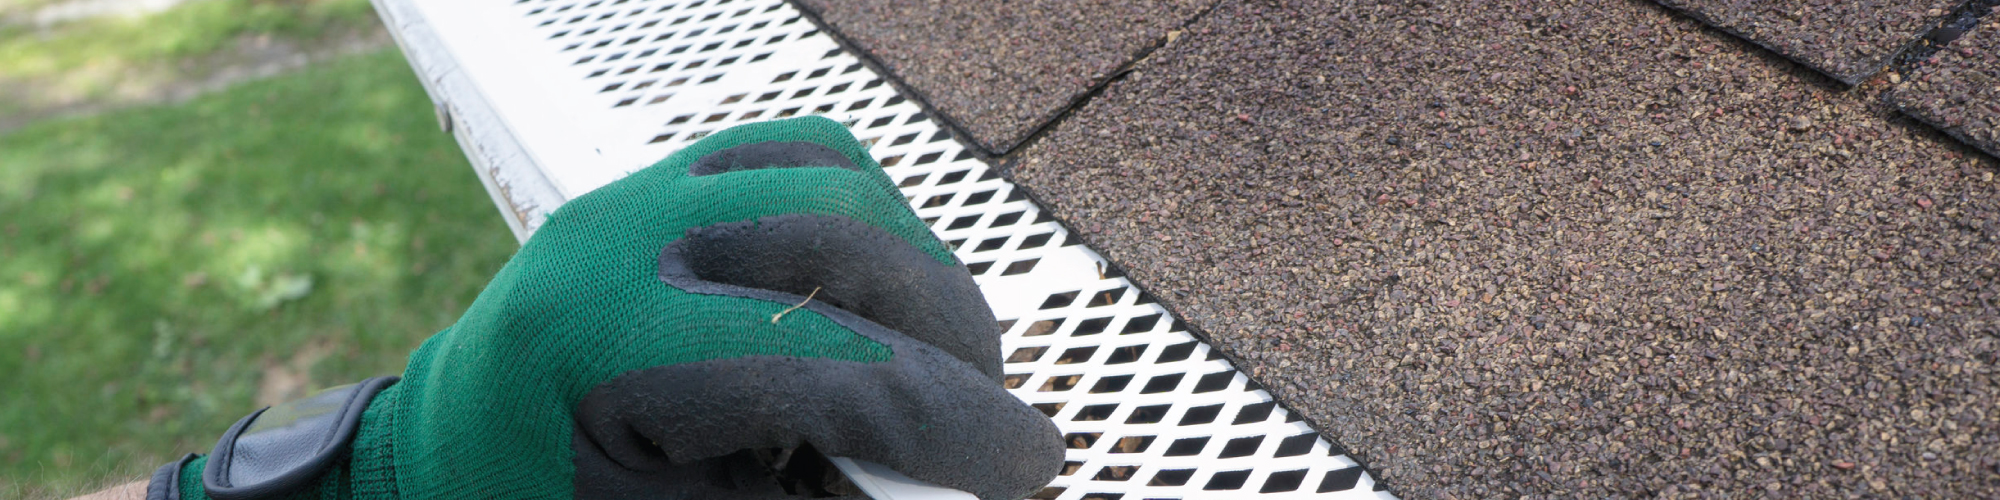 Gutter Cleaning Chimney Sweeps West Knoxville TN